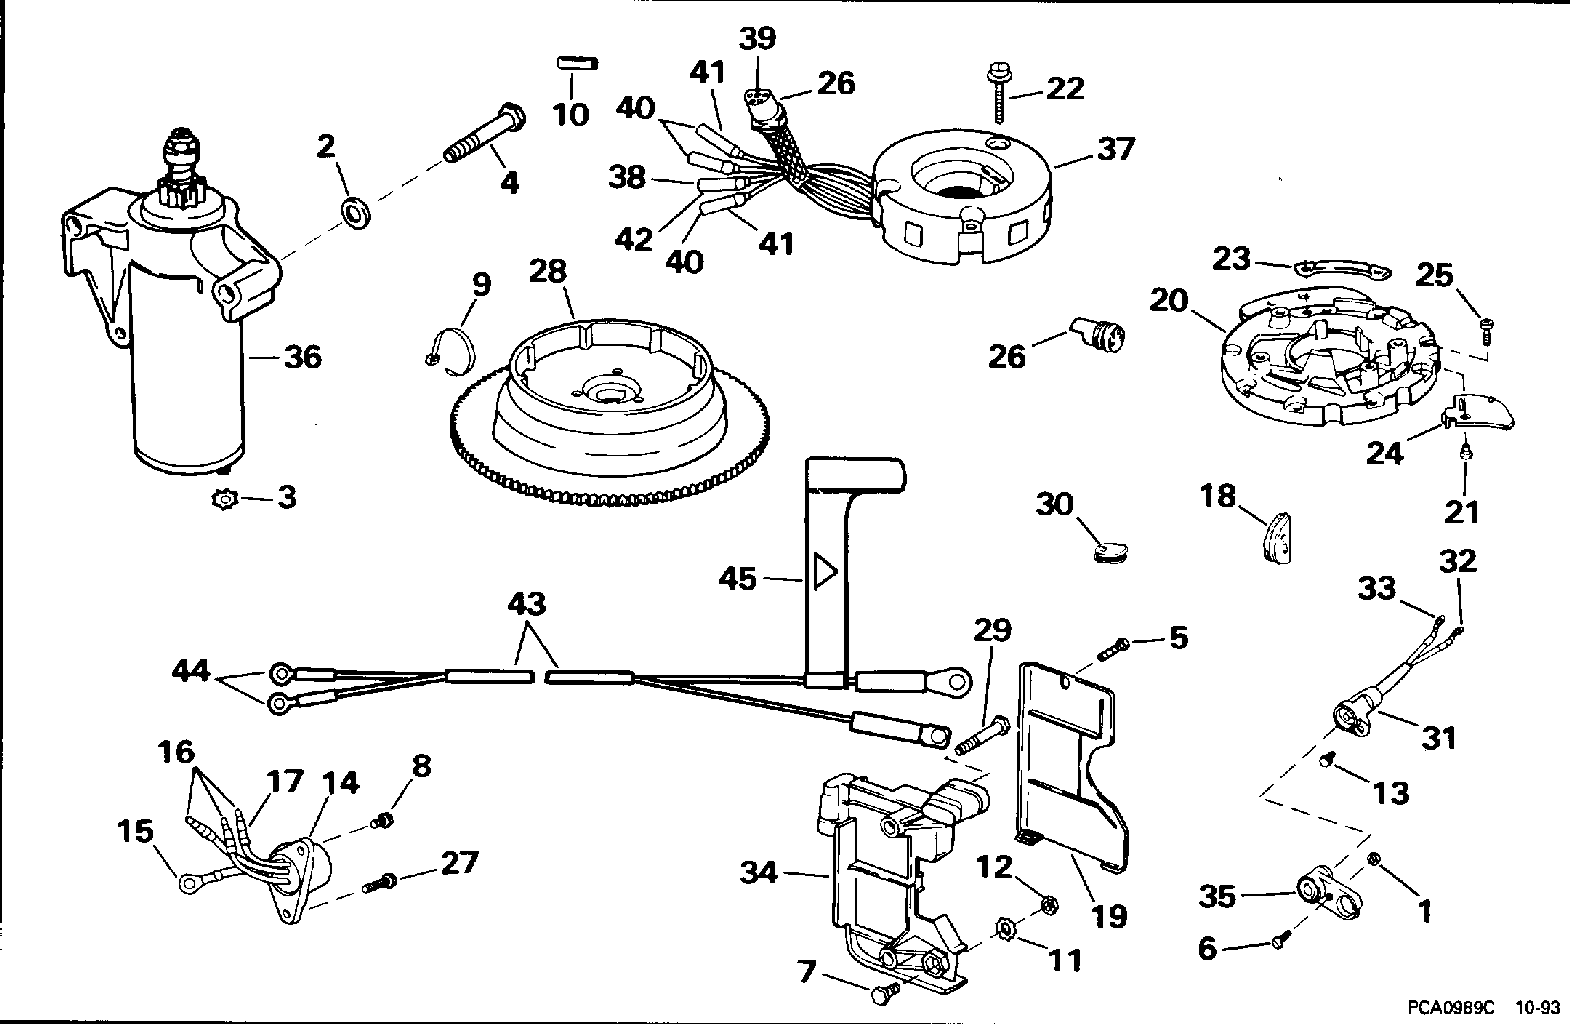 1977 evinrude 115 wiring diagram f250 1973 65 hp imageresizertool com